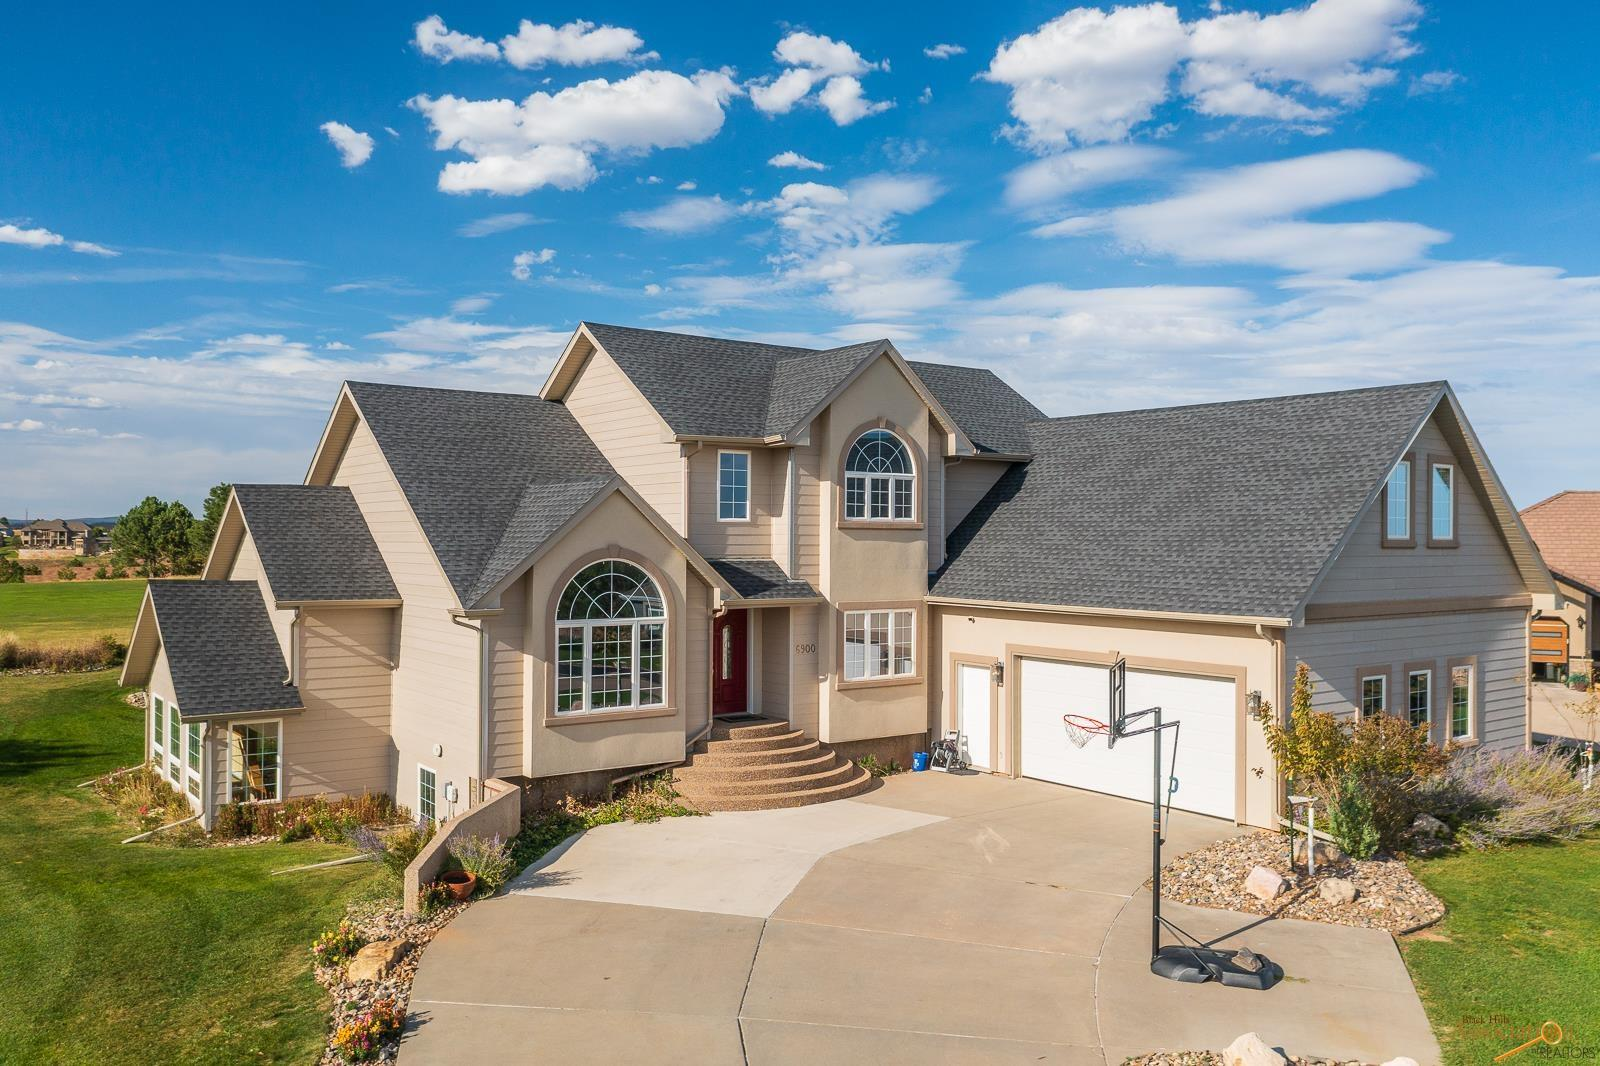 Listed by Megan Mahoney, Assist2Sell Realty (785-304-0570.)  This BEAUTIFUL, 2-story home sits in a quiet cul-de-sac in the coveted Red Rock Estates Subdivision. The 9th and 10th fairways of Red Rock Golf course are right out your back door! This custom-built house features 5 bedrooms, 3 1/2 baths and 5144 sq feet.  Some of the features include a formal dining room, office, butlers pantry, vaulted ceilings, gas fireplace, maple cabinets and granite countertops.  The spacious master bedroom suite on the main level has a walk-in closet, private bathroom with double shower heads and french doors that lead out onto the patio. The upper level has two bedrooms, each with their own walk-in closets, and a large bonus rec room.  Entertain guests in the large family room in the basement,  complete with wet bar, Theater room, full bathroom and walkout to the back!  Don't miss out on this gorgeous house- call to set up your showing today!